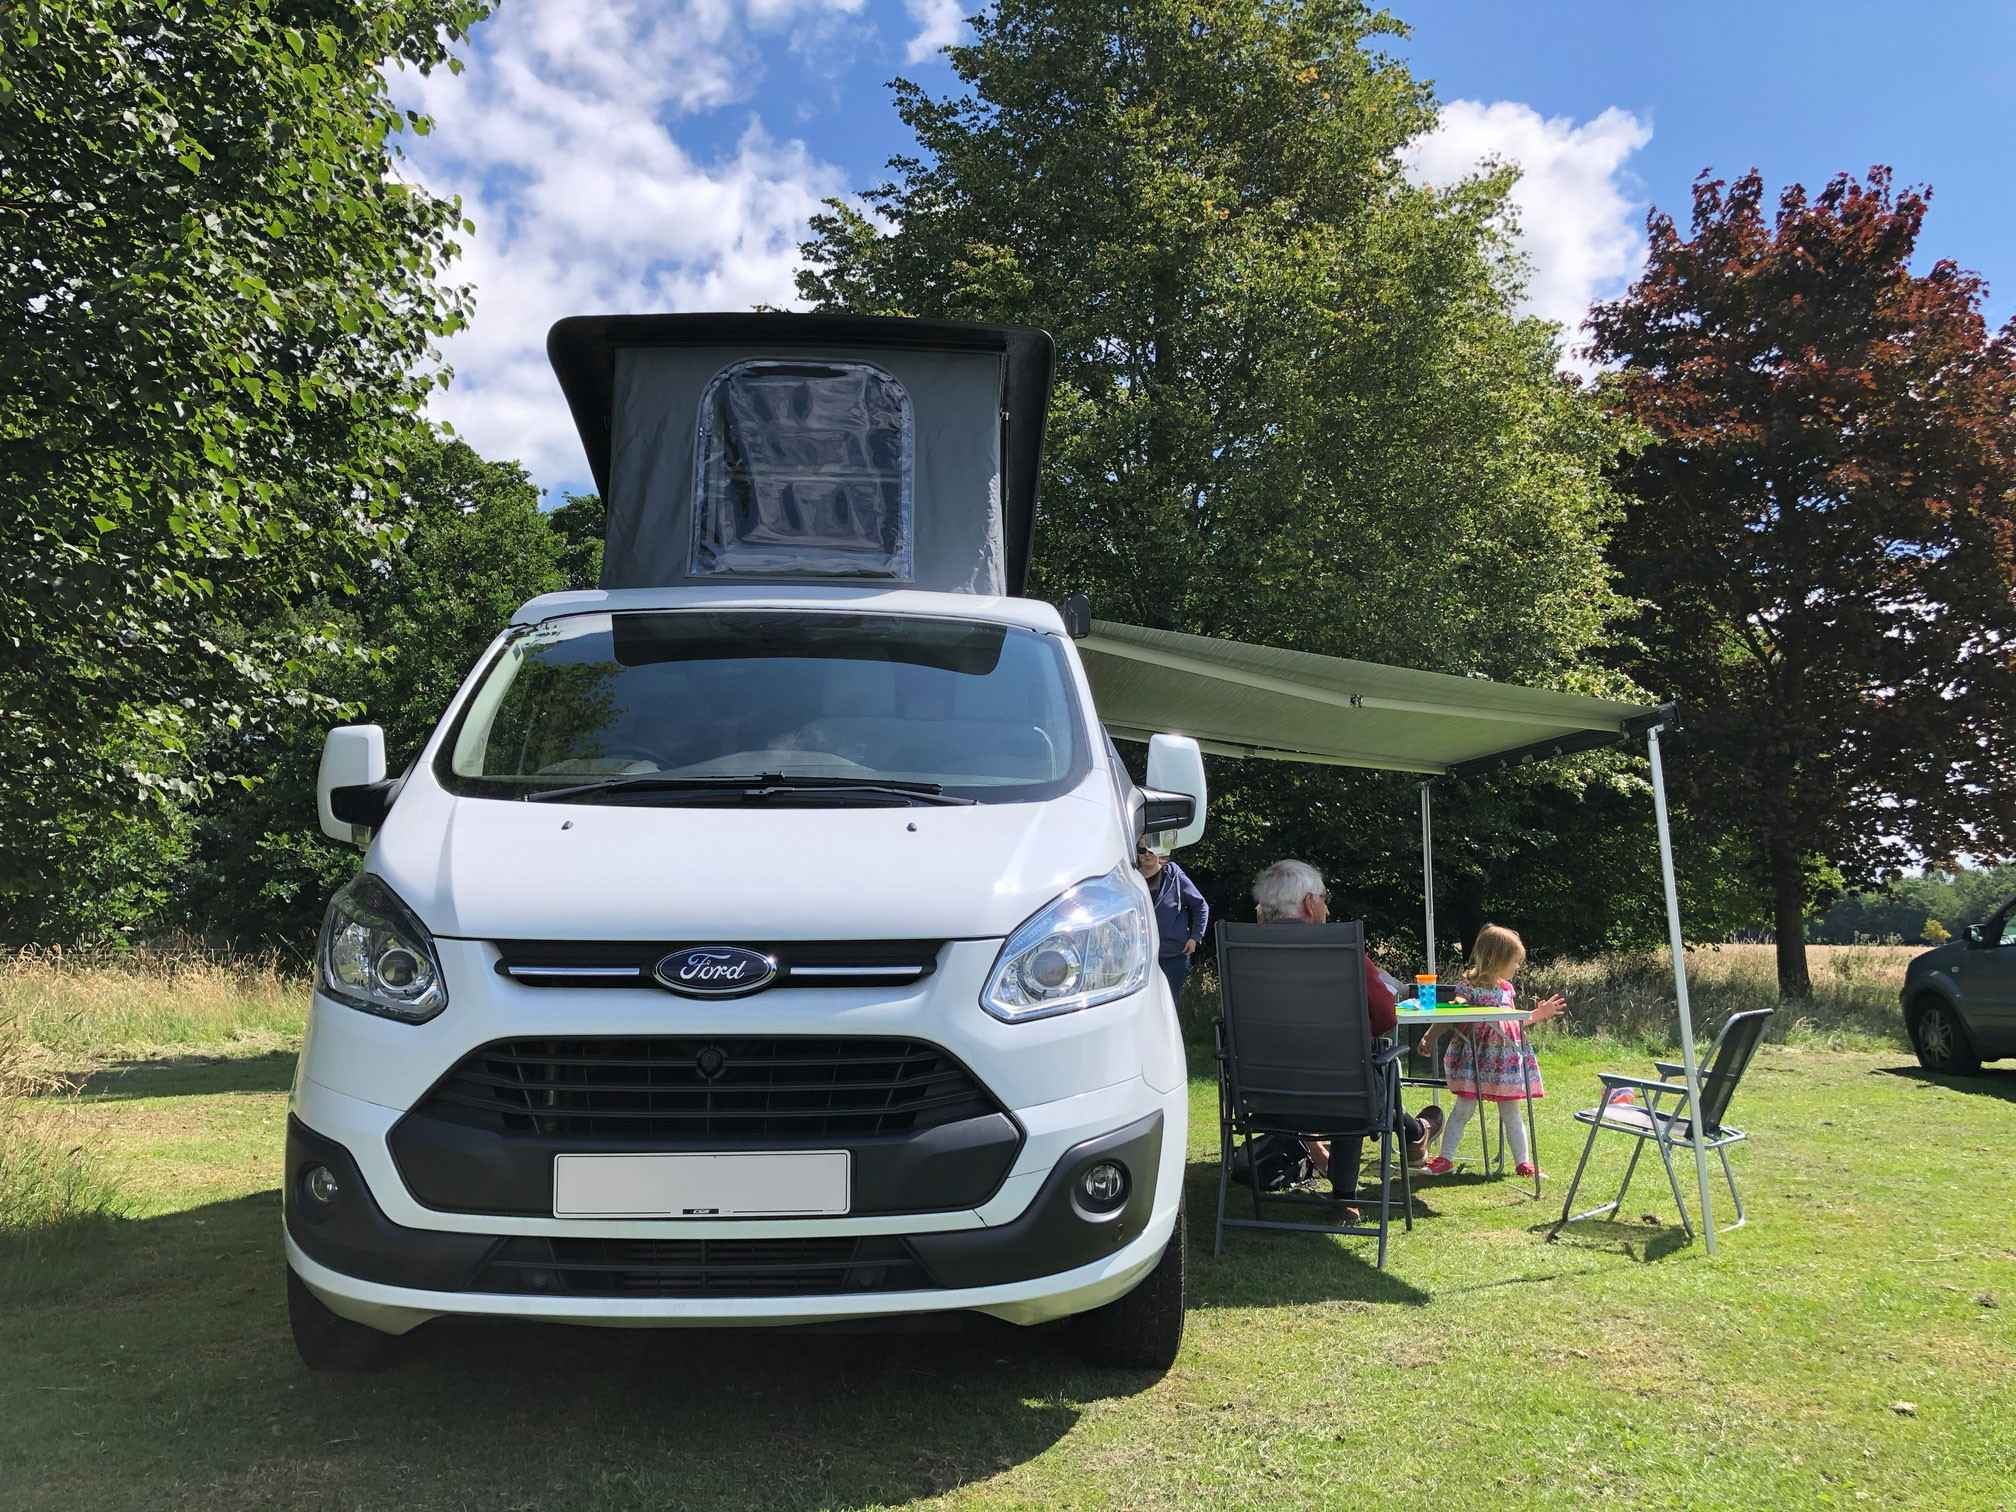 A Ford Campervan called Marley and for hire